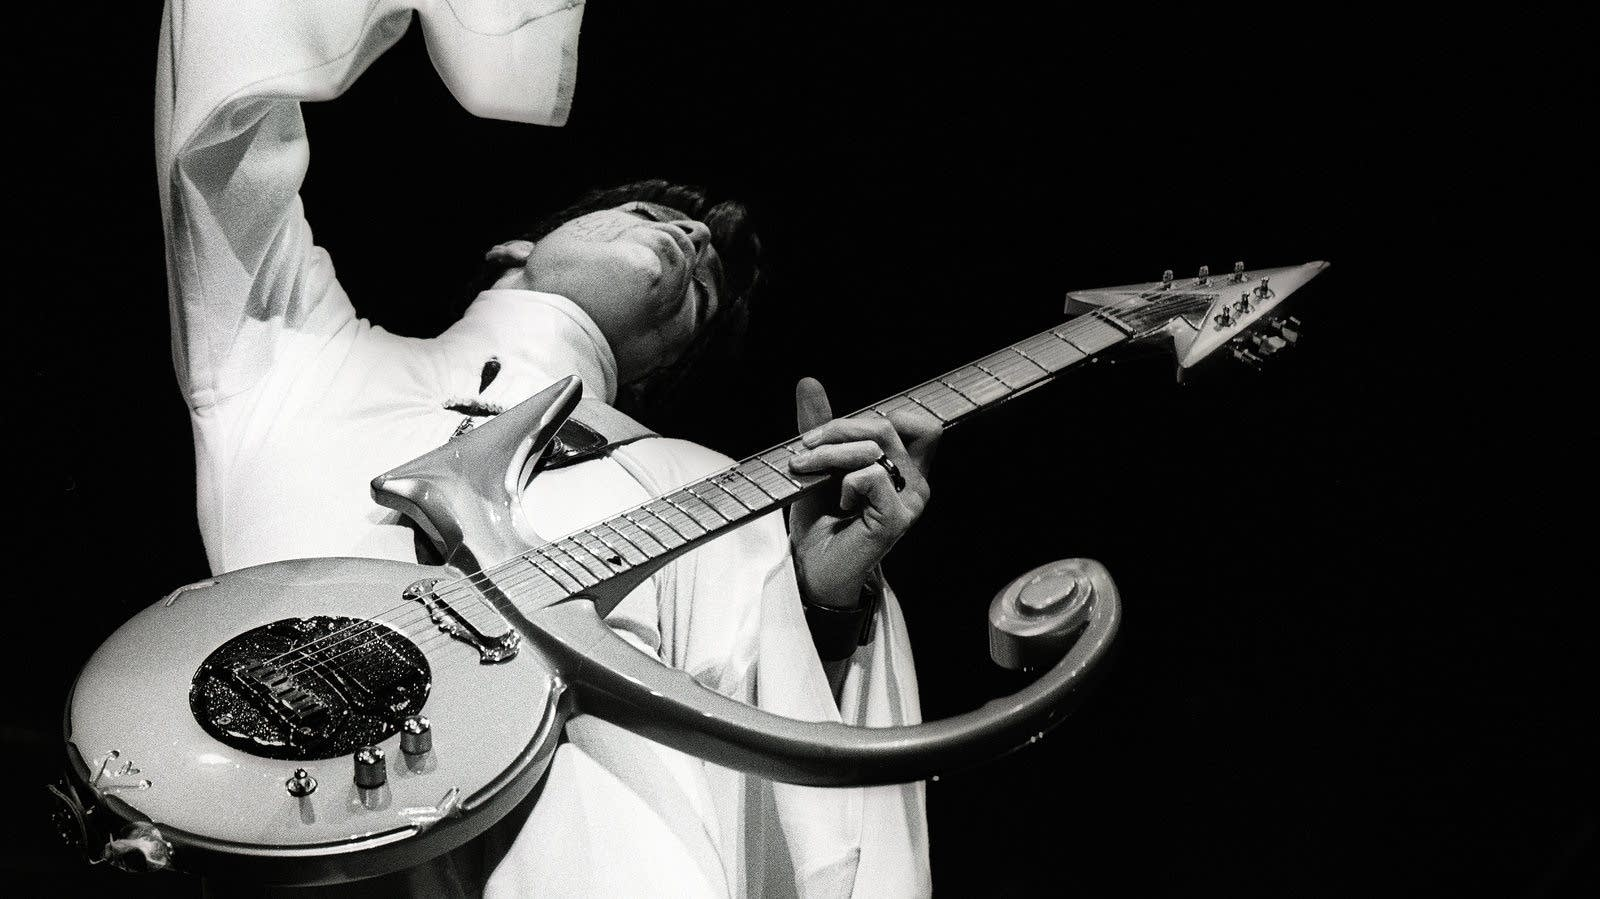 Prince on the iconic symbol guitar